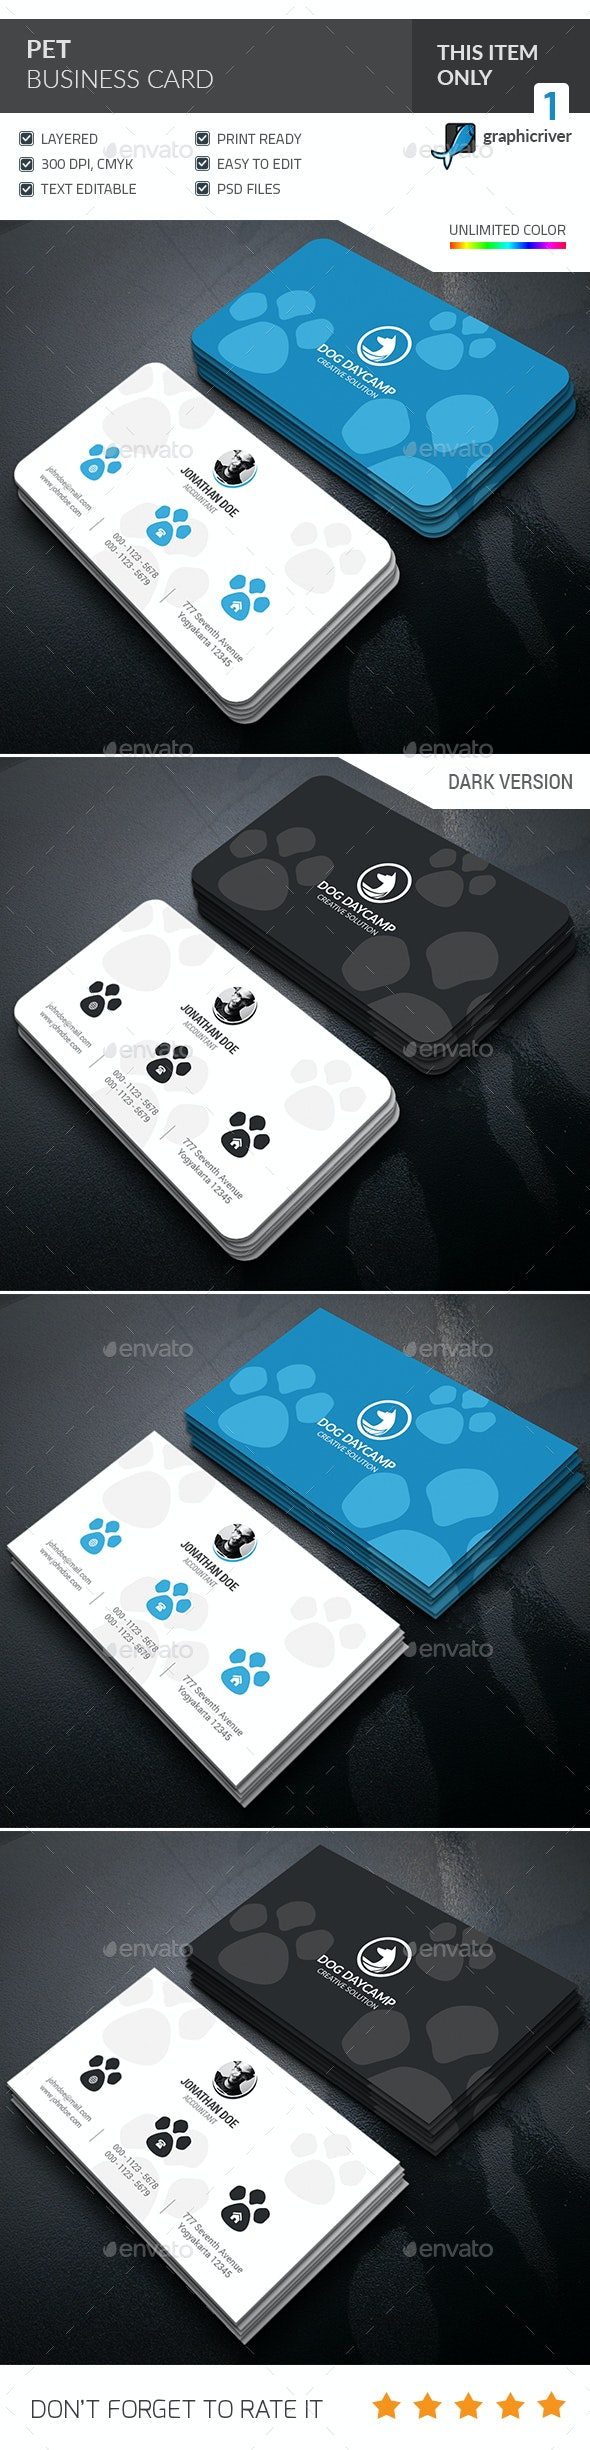 Pets Care Business Card  - Industry Specific Business Cards